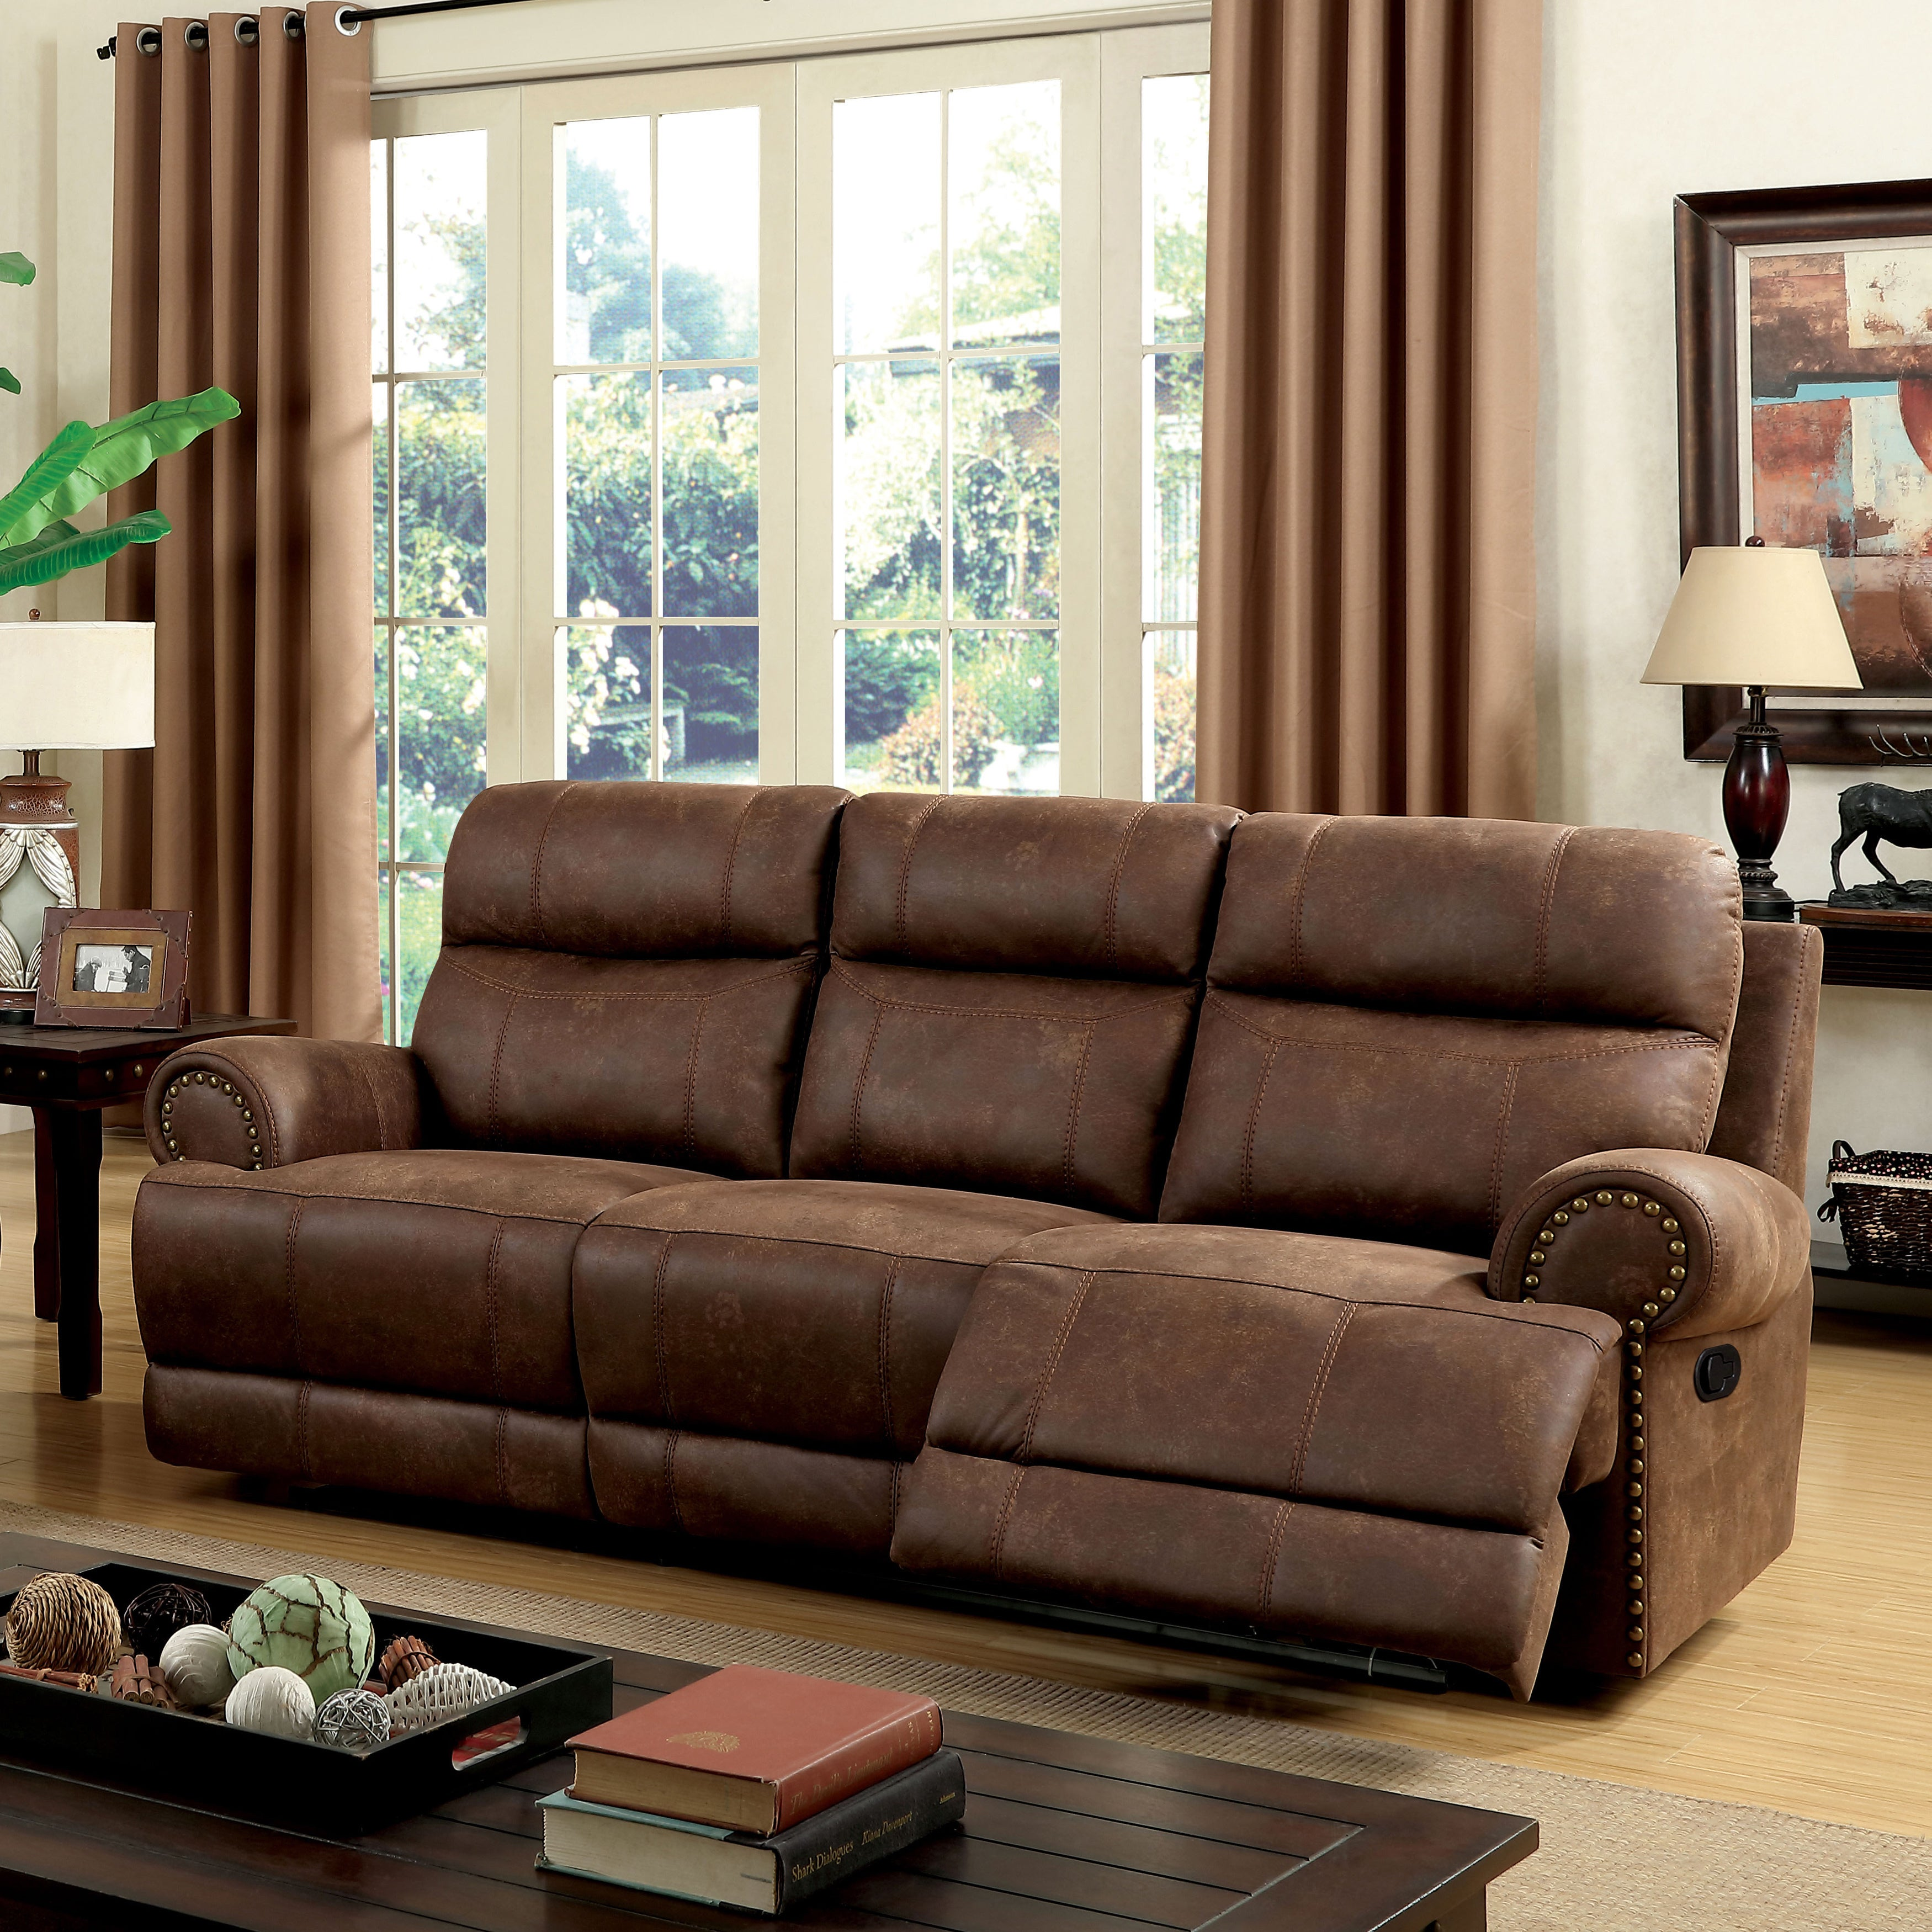 Furniture of America Langly Classic Brown Fabric-like Vin...